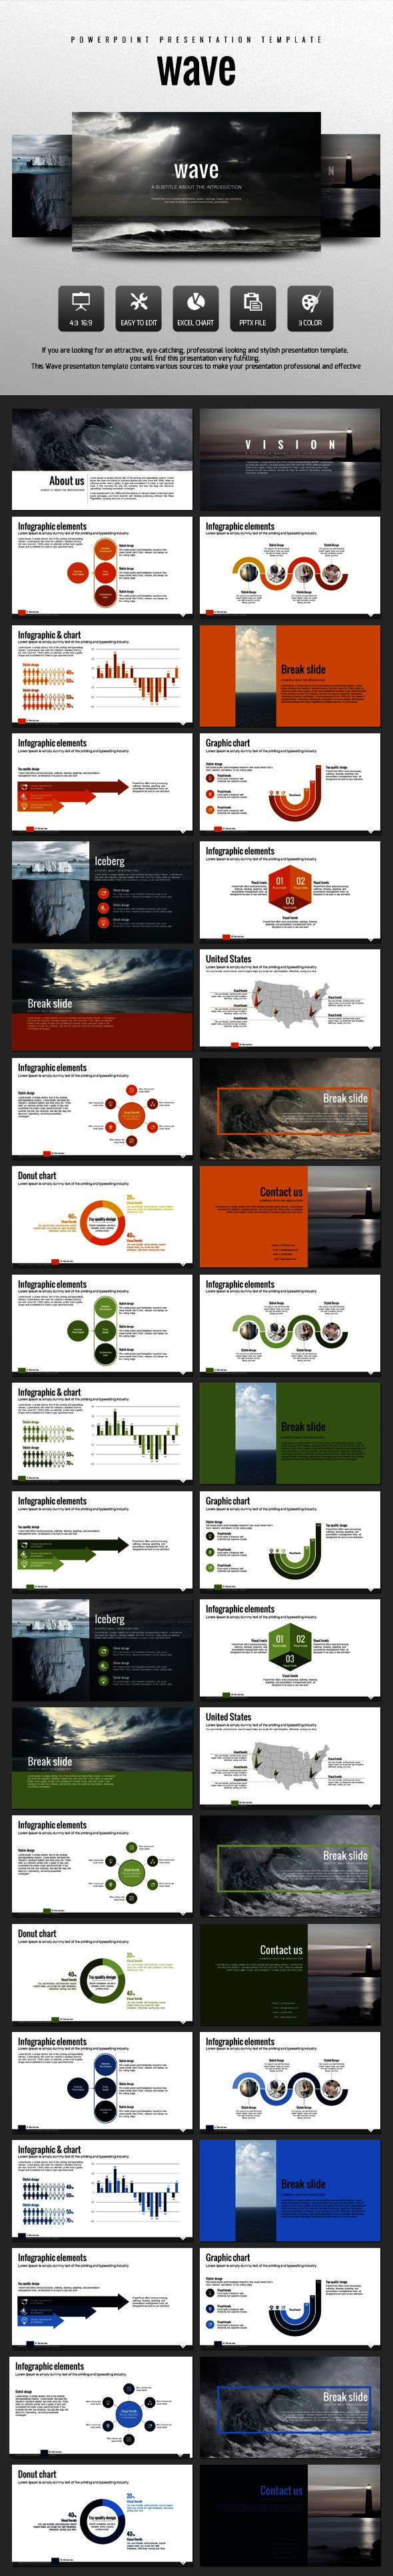 PowerPoint Template #design #slides Download: http://graphicriver.net/item/wave/13001534?ref=ksioks